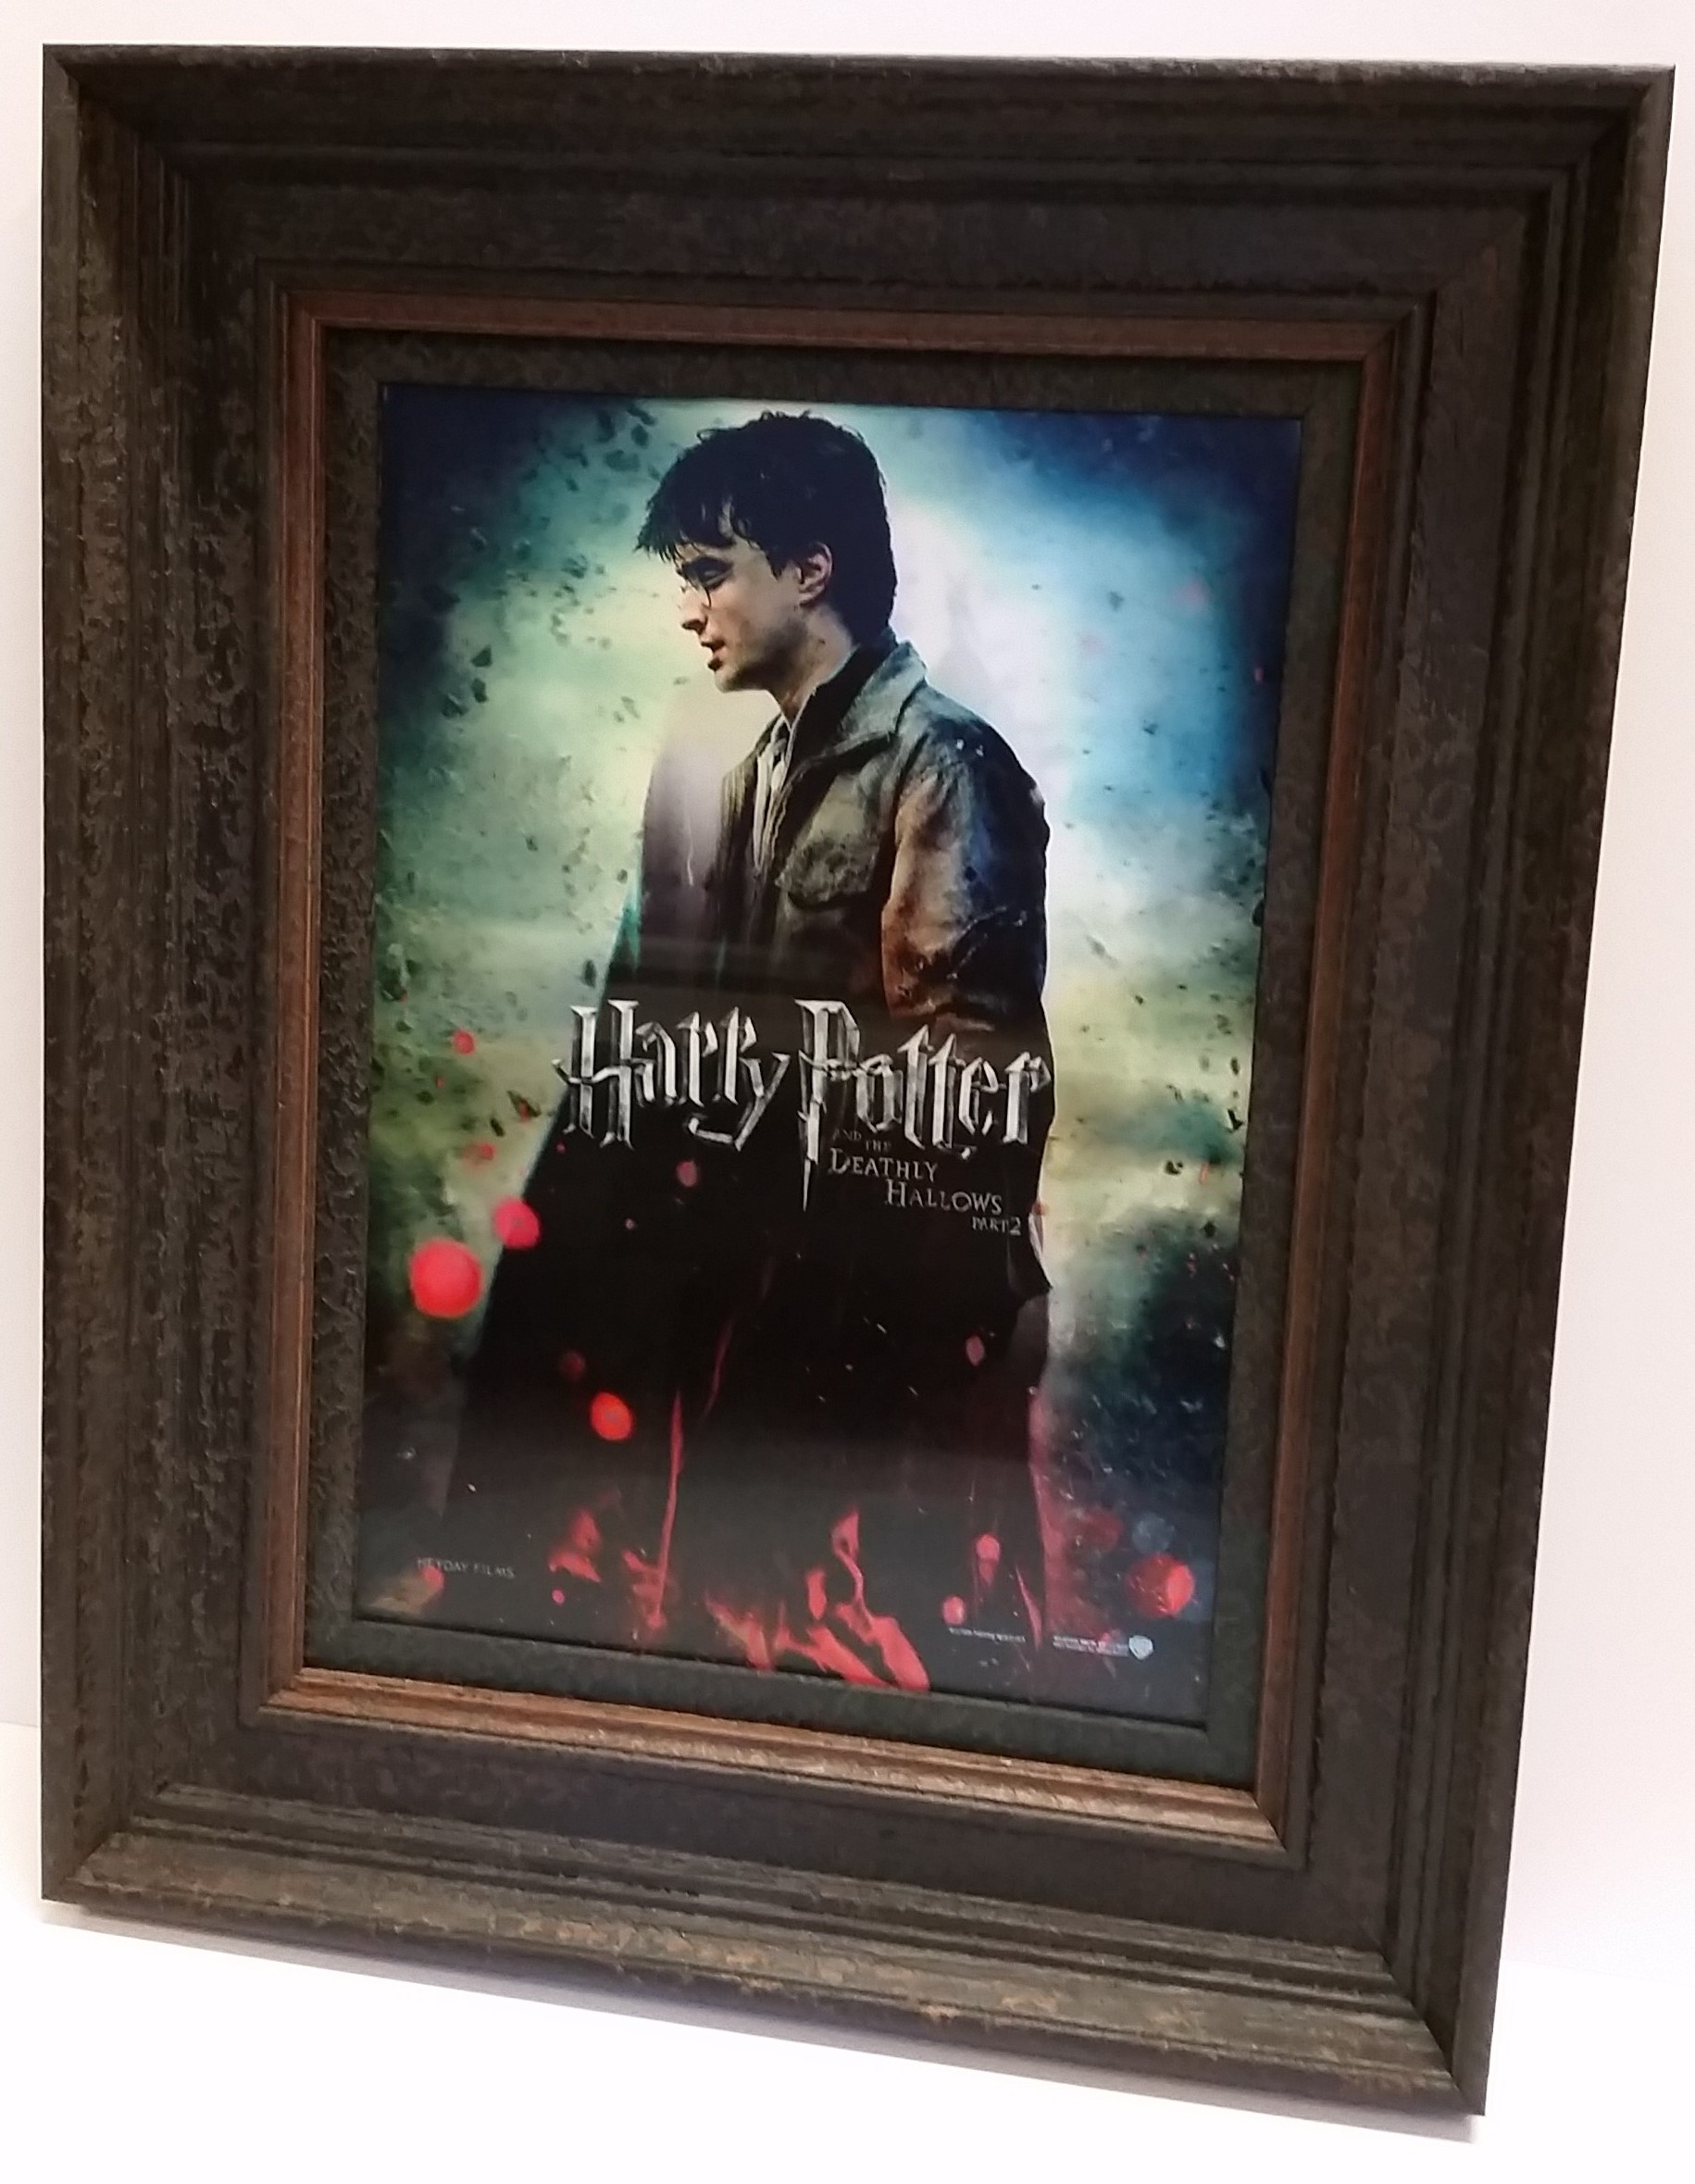 Harry Potter to Voldermort in a frame!